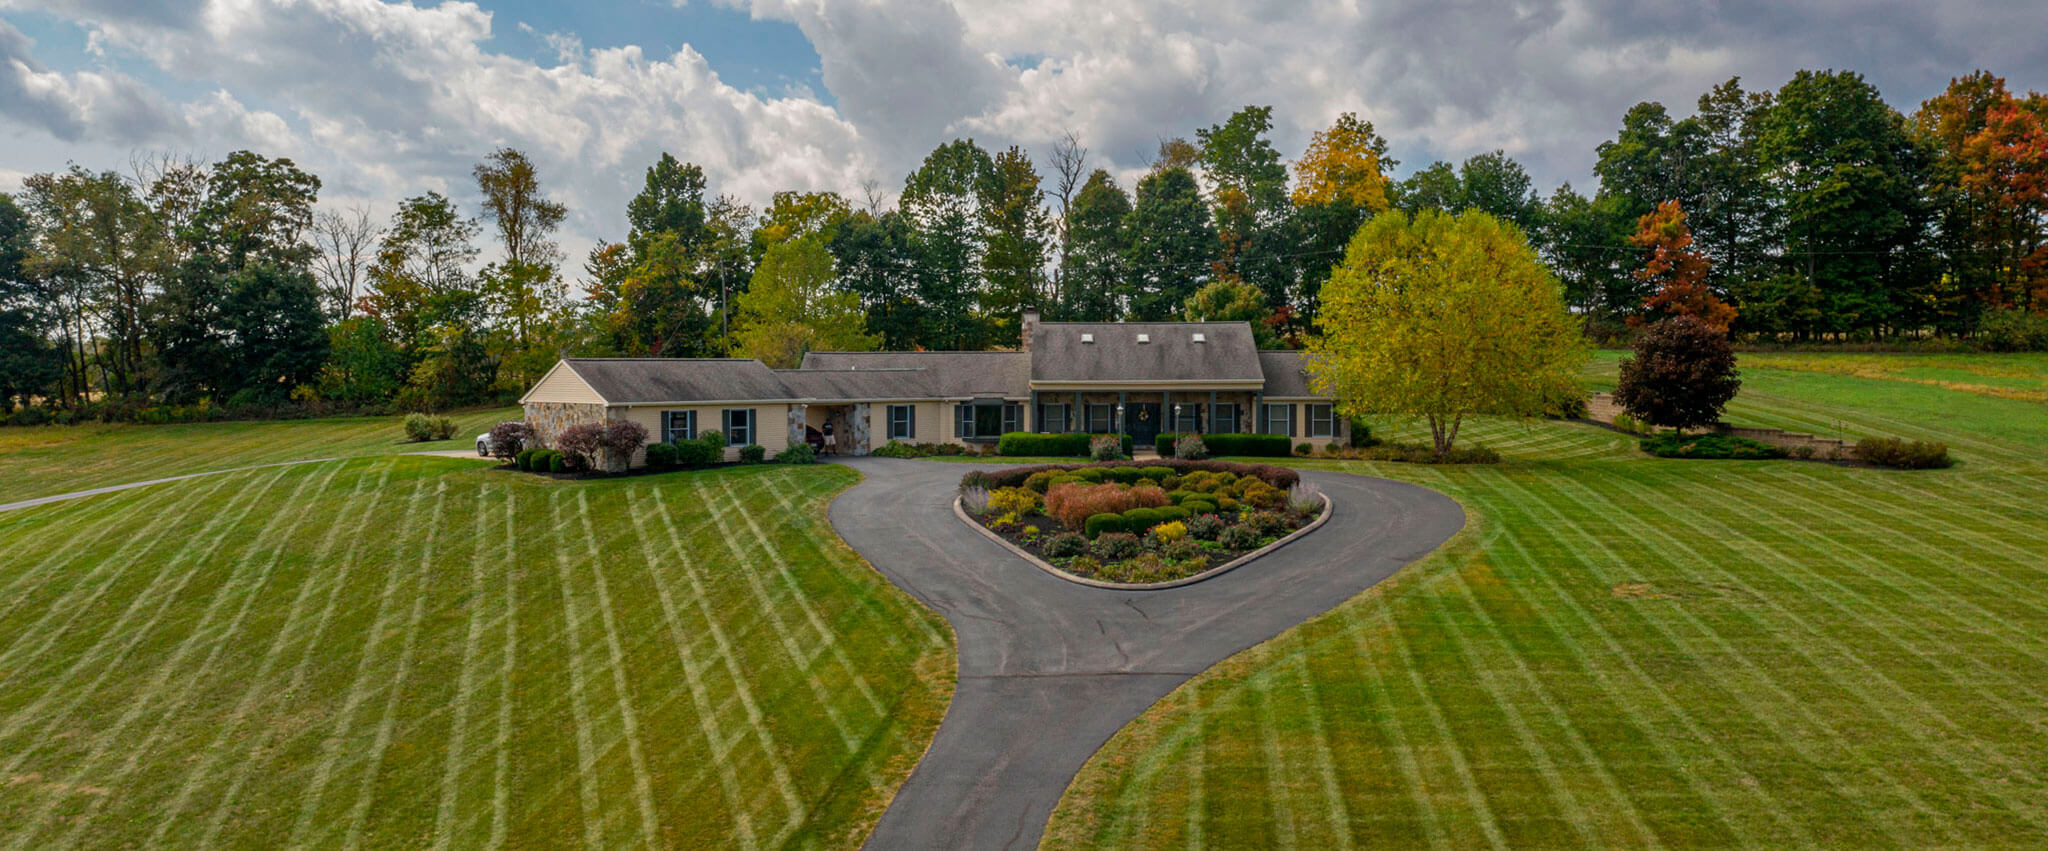 WEBSITE-PHOTO-5-3--MANICURED-LAWN-AND-HOUSE-DRONE-SHOT-1